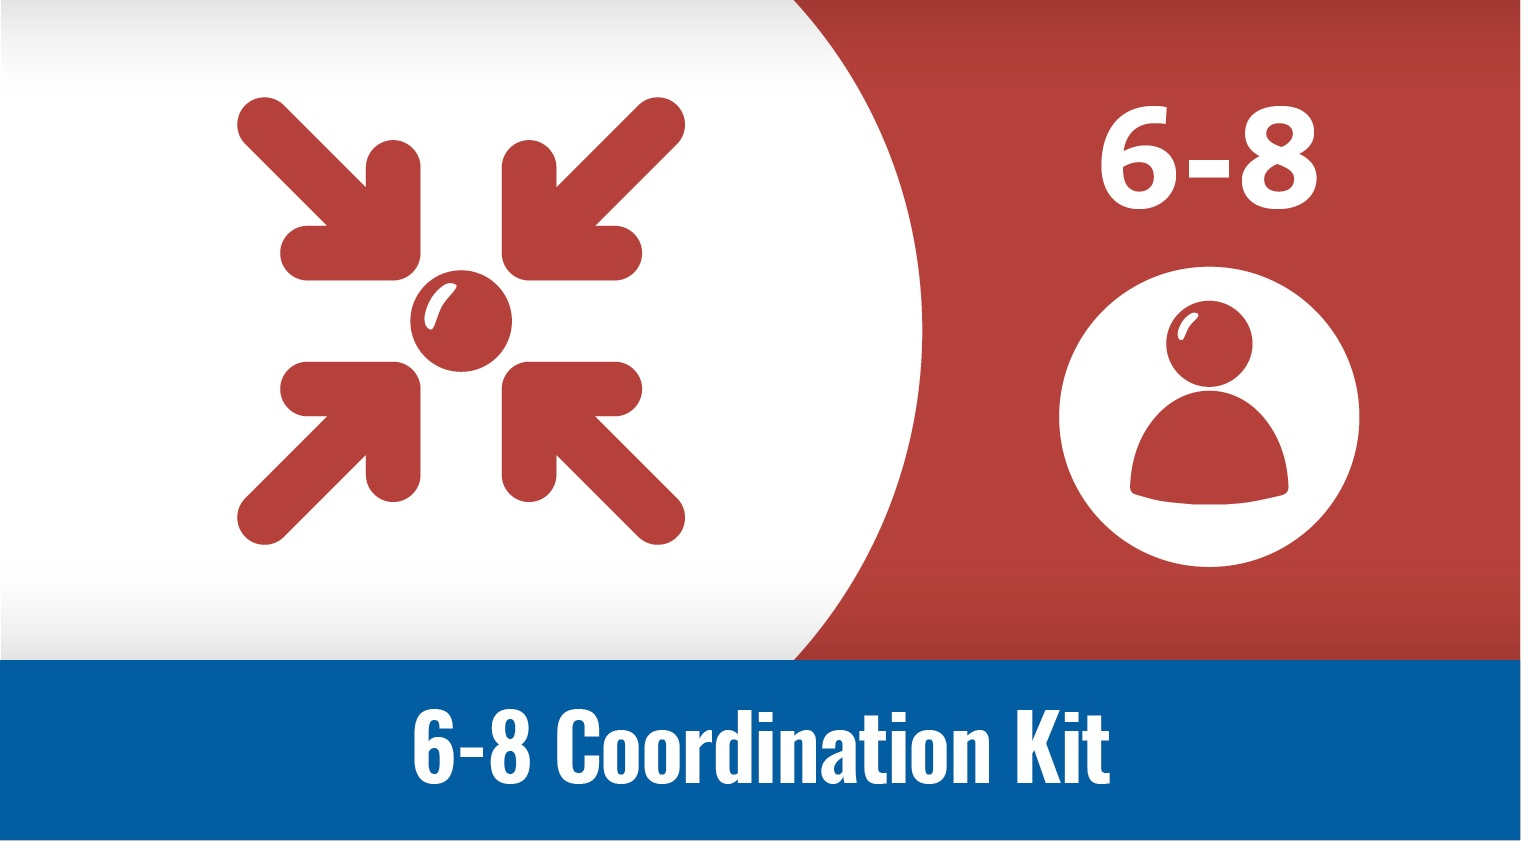 CATCH Coordination Kit (6-8)